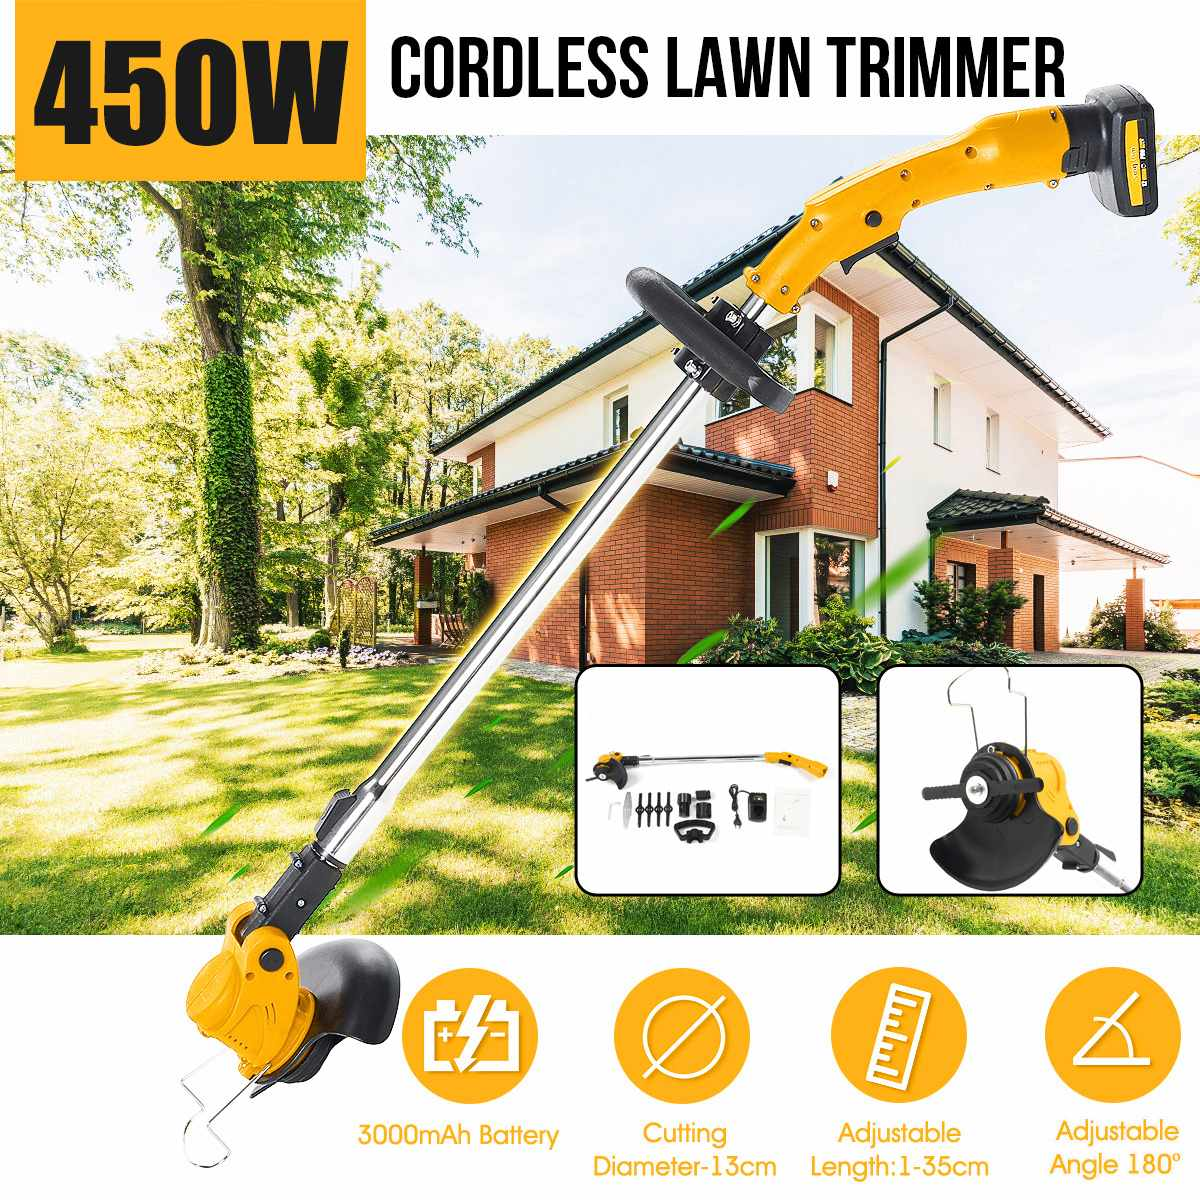 Ion Cordless With Lawn Mower Lawn 450W Lithium Cutter Brush 2000mAh String 26V Electric Tools Battery Grass Garden Trimmer